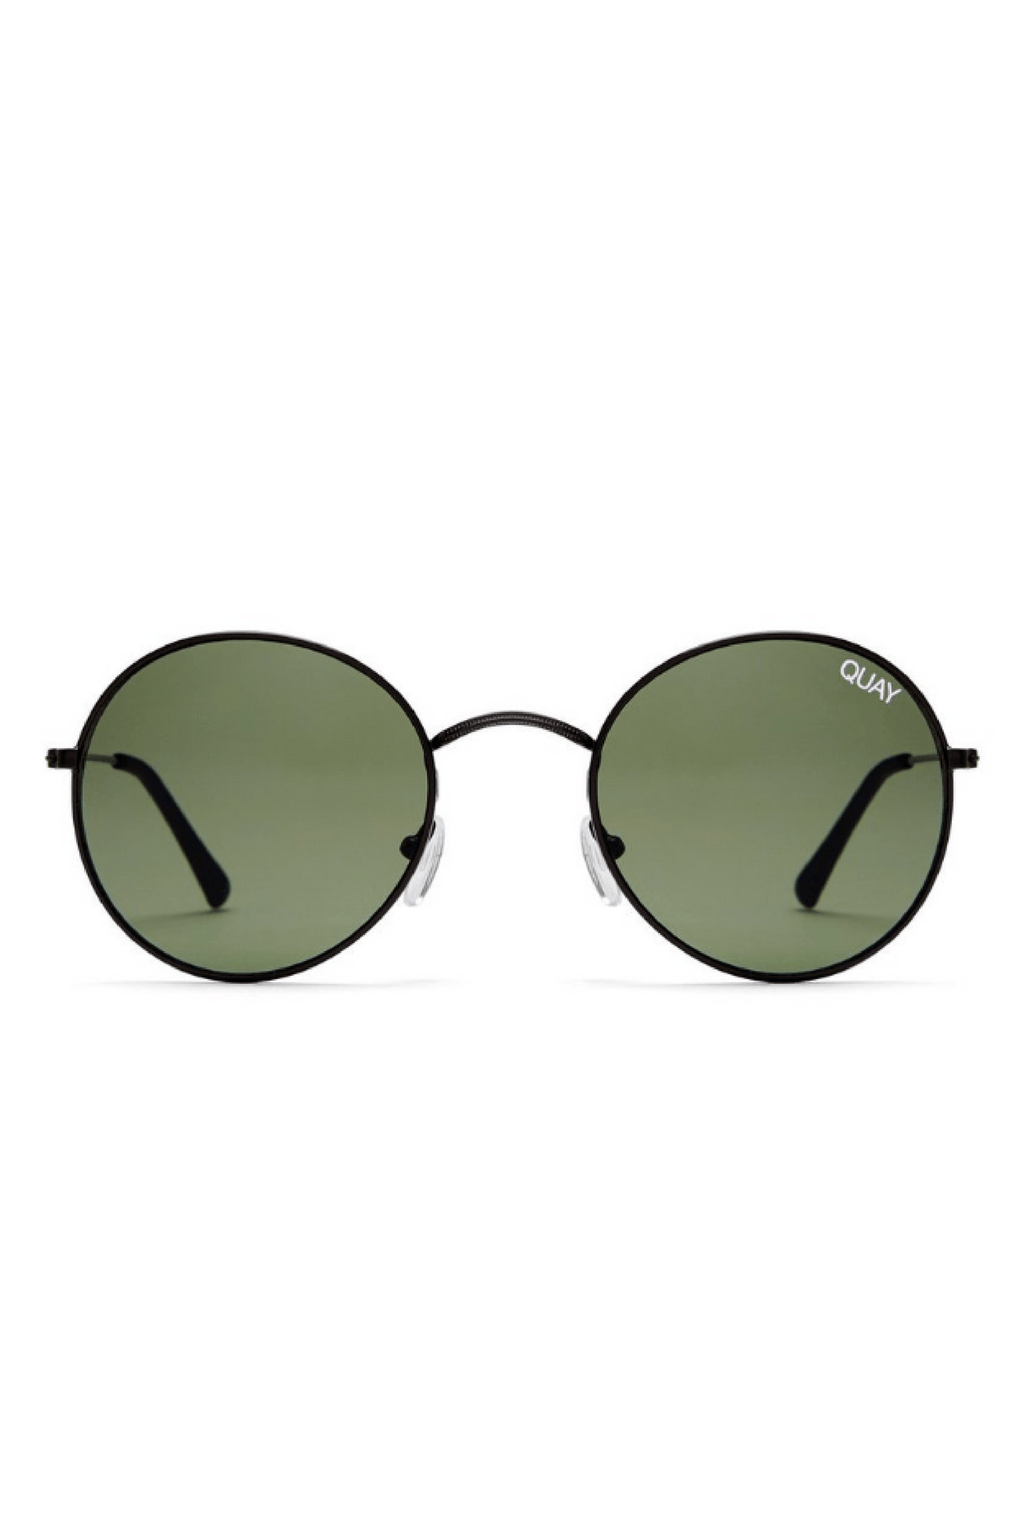 Mod Star Sunglasses in Black/Green